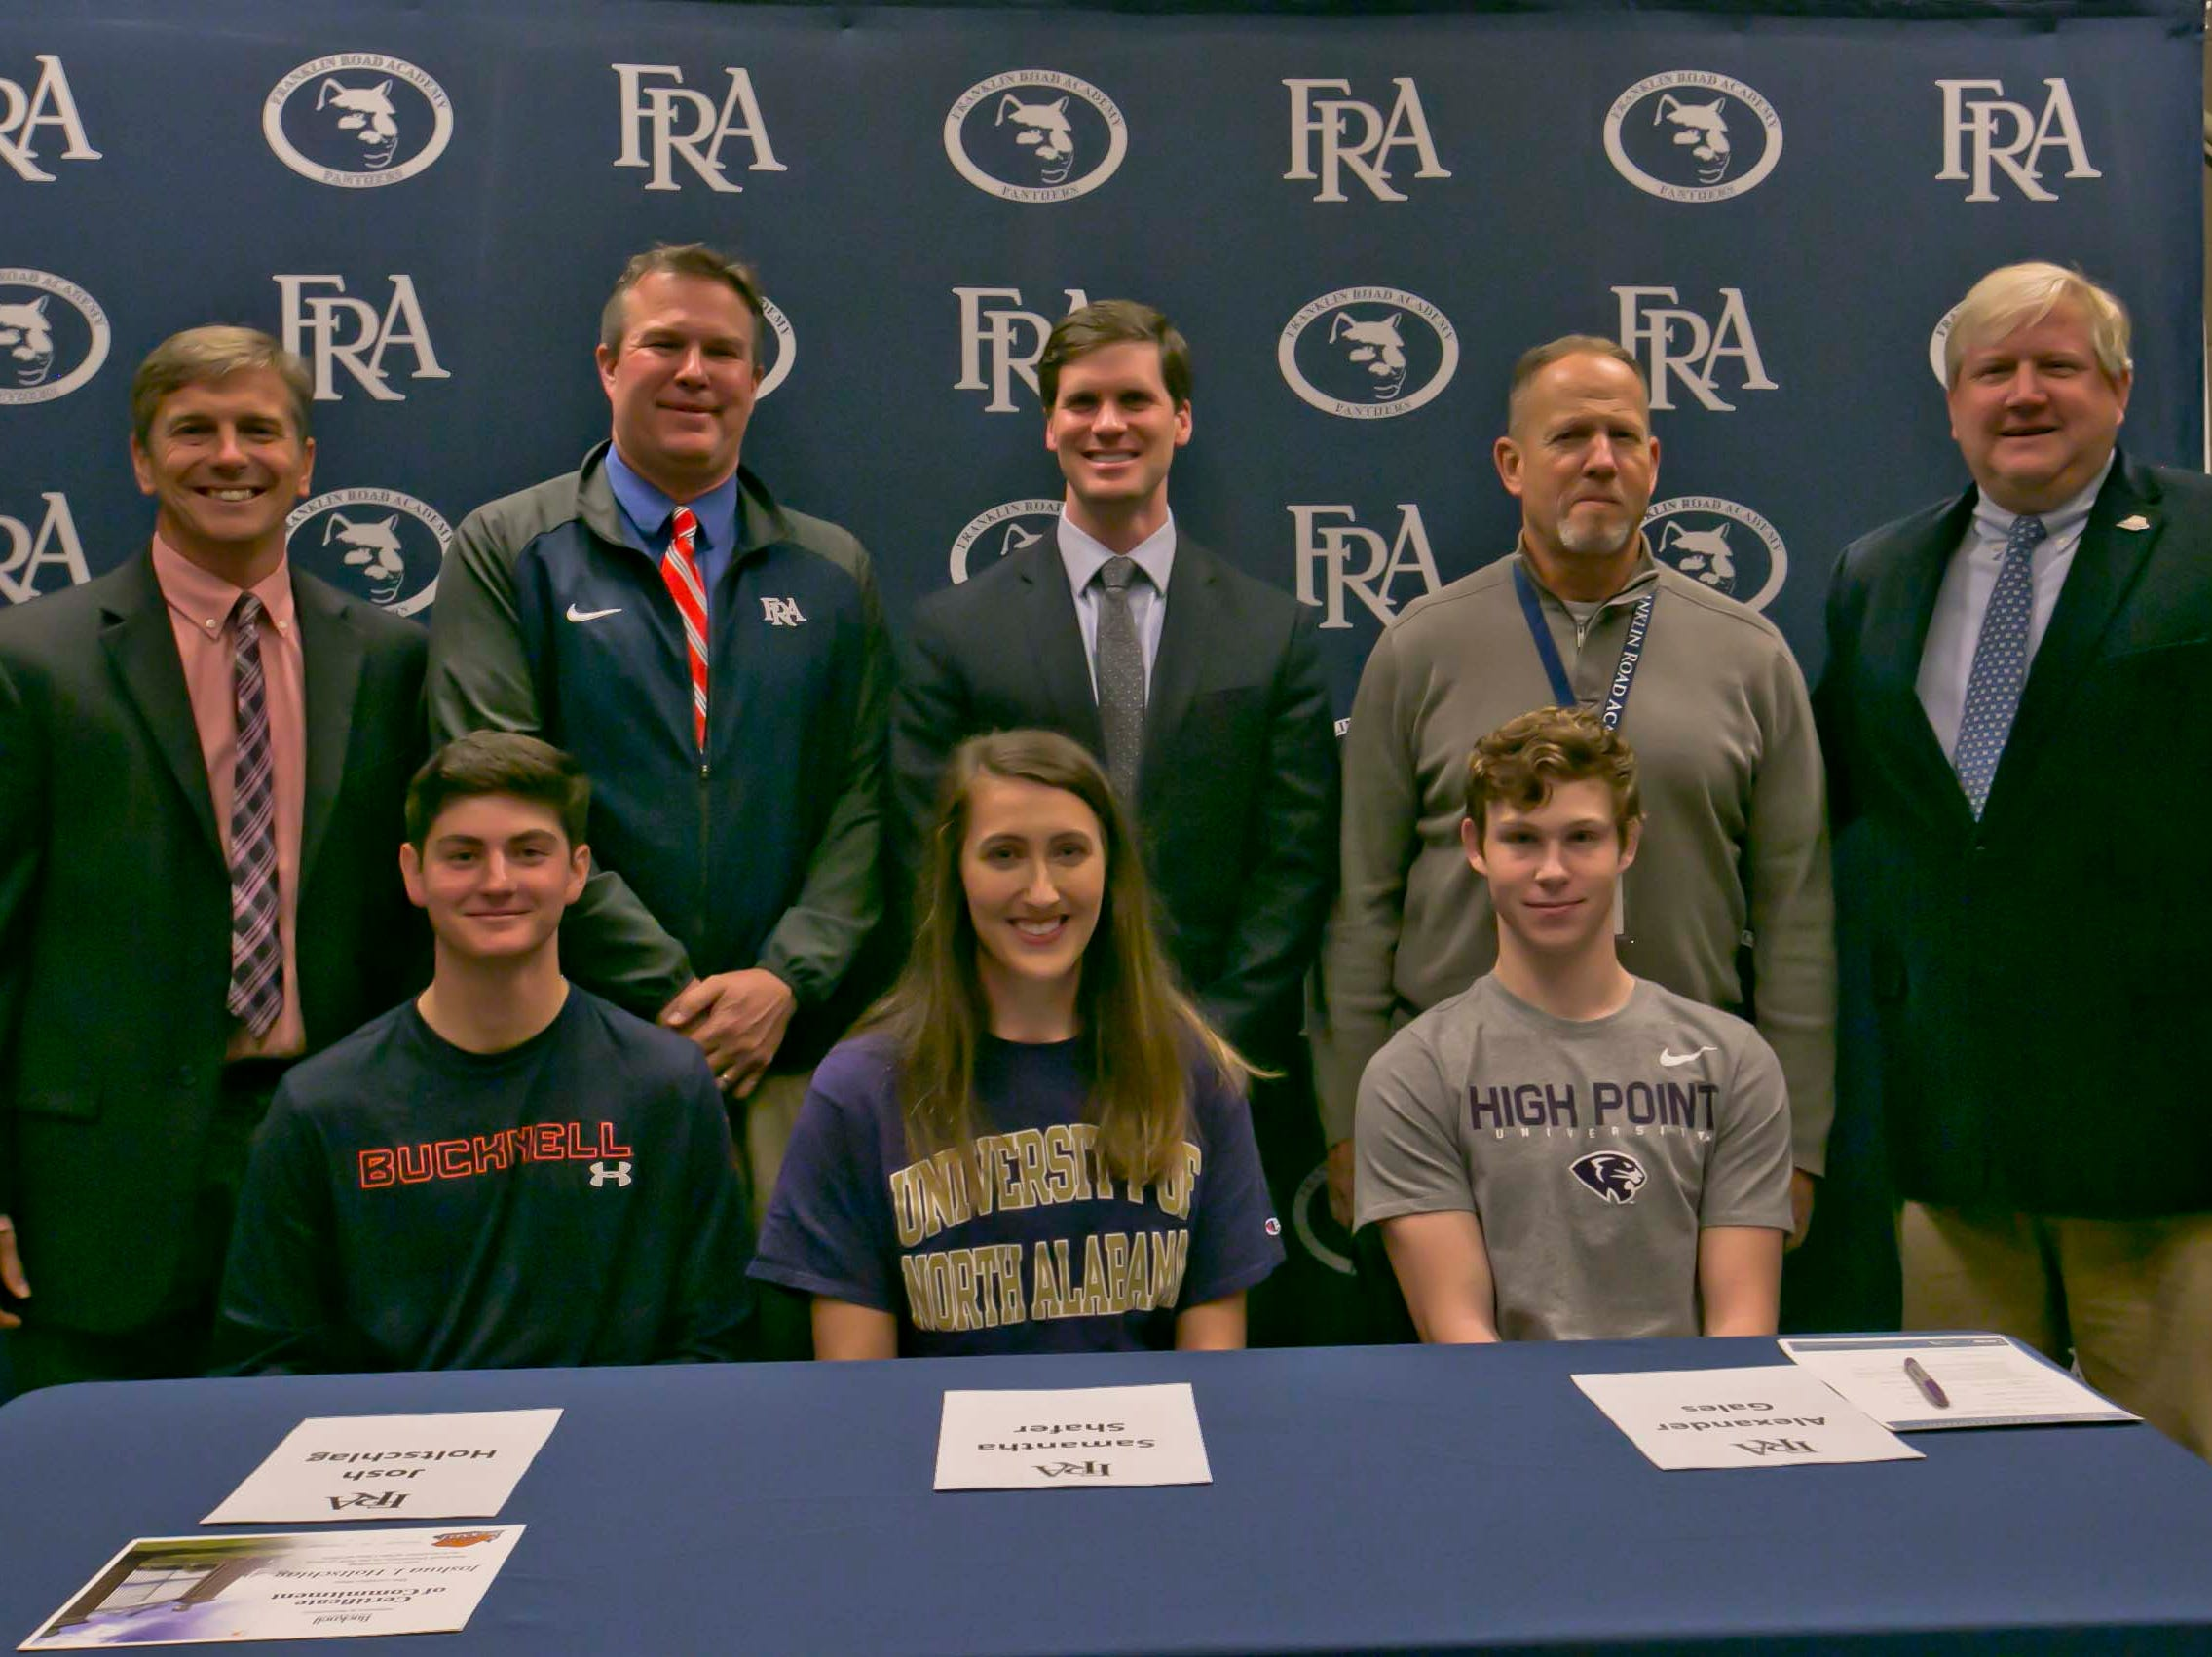 FRA had three athletes sign letters of intent on Wednesday to play sports. They included Josh Holtschlag (Bucknell golf), Samantha Shafer (North Alabama volleyball), Alexander Gales (High Point track and field).